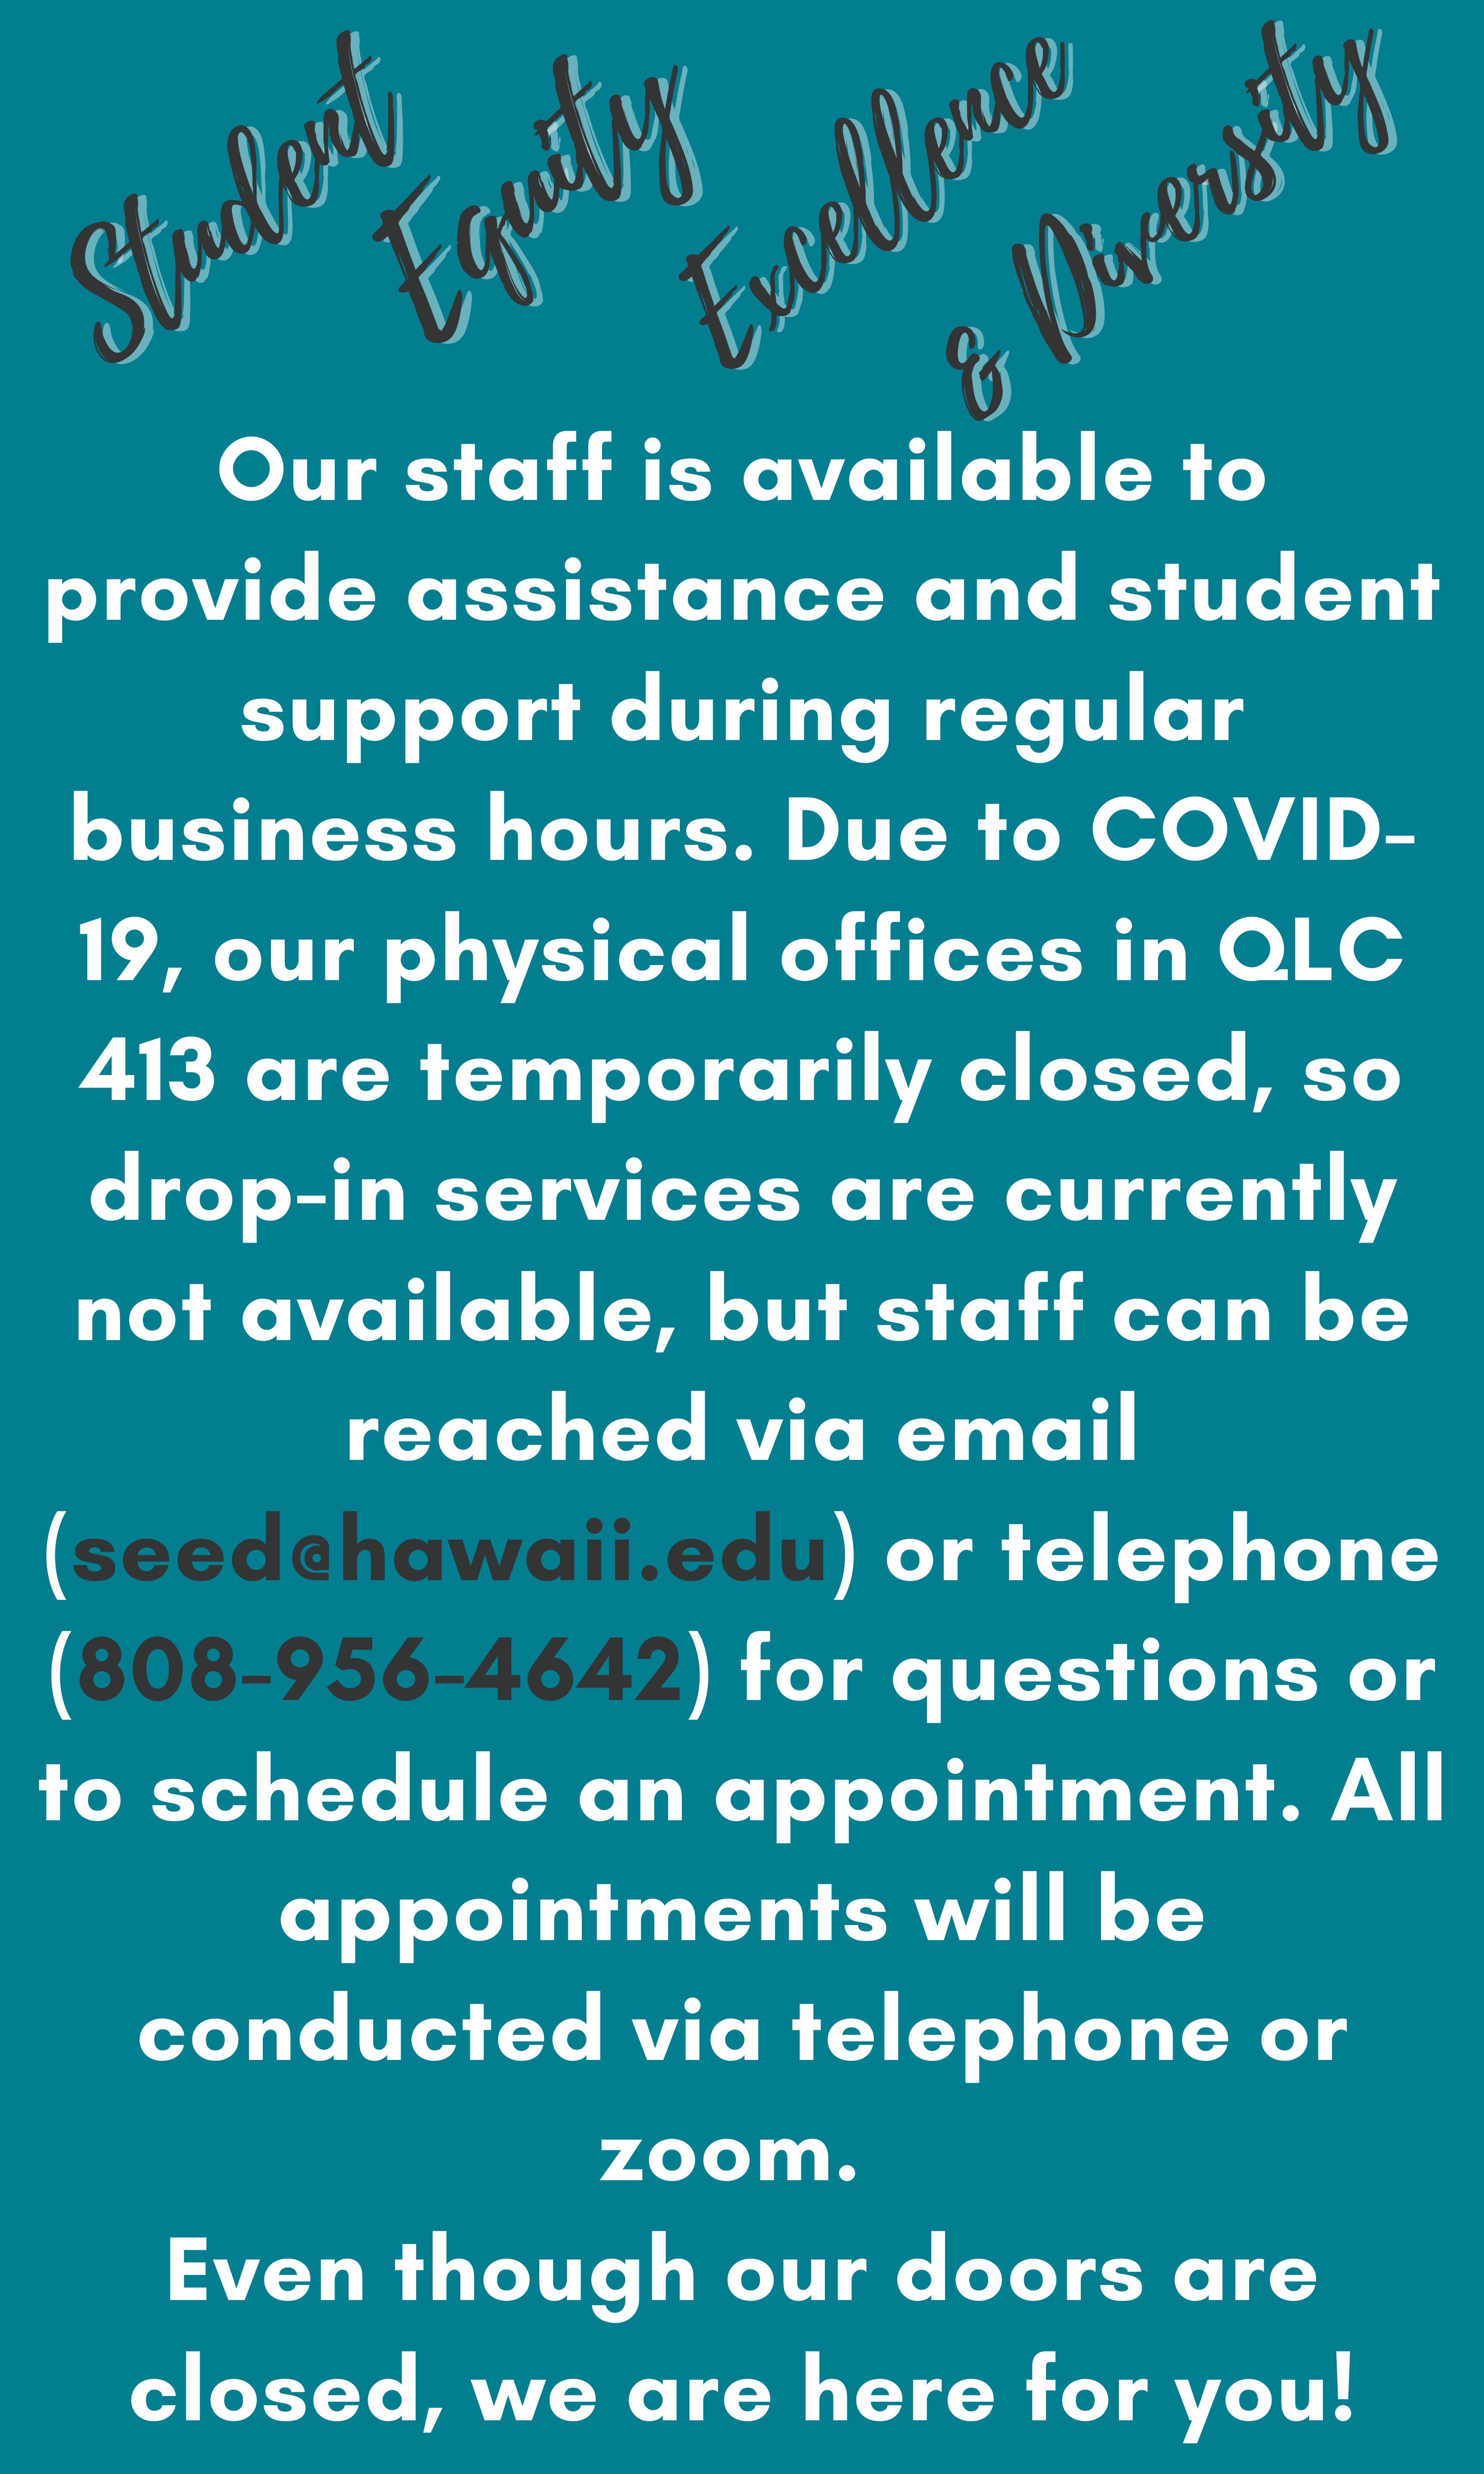 Our staff is available to provide assistance and student support during regular business hours. Due to COVID-19, our physical offices in QLC 413 are temporarily closed, so drop-in services are currently not available, but staff can be reached via email (seed@hawaii.edu) or telephone (808-956-4642) for questions or to schedule an appointment. All appointments will be conducted via telephone or zoom. Even though our doors are closed, we are here for you